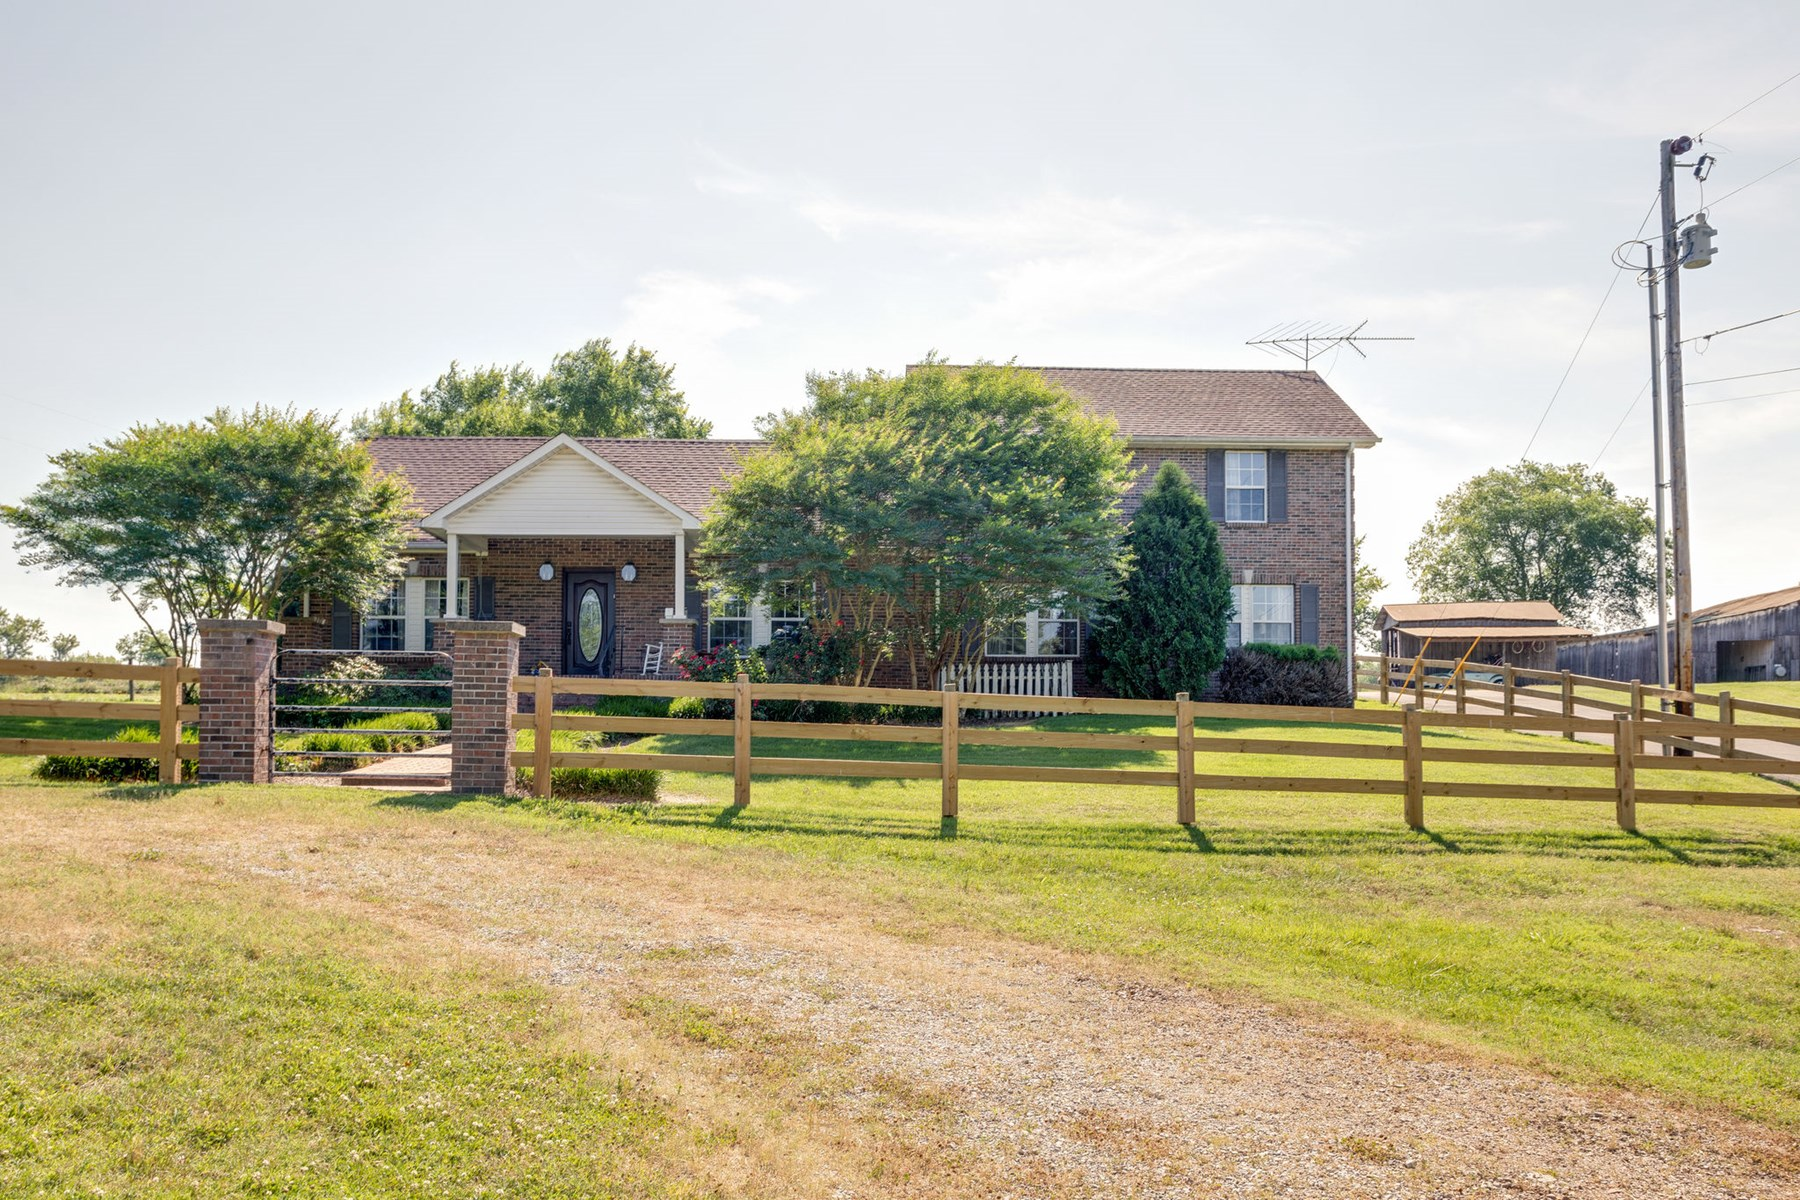 Home with 6.93 Acres in Maury County, Tennessee